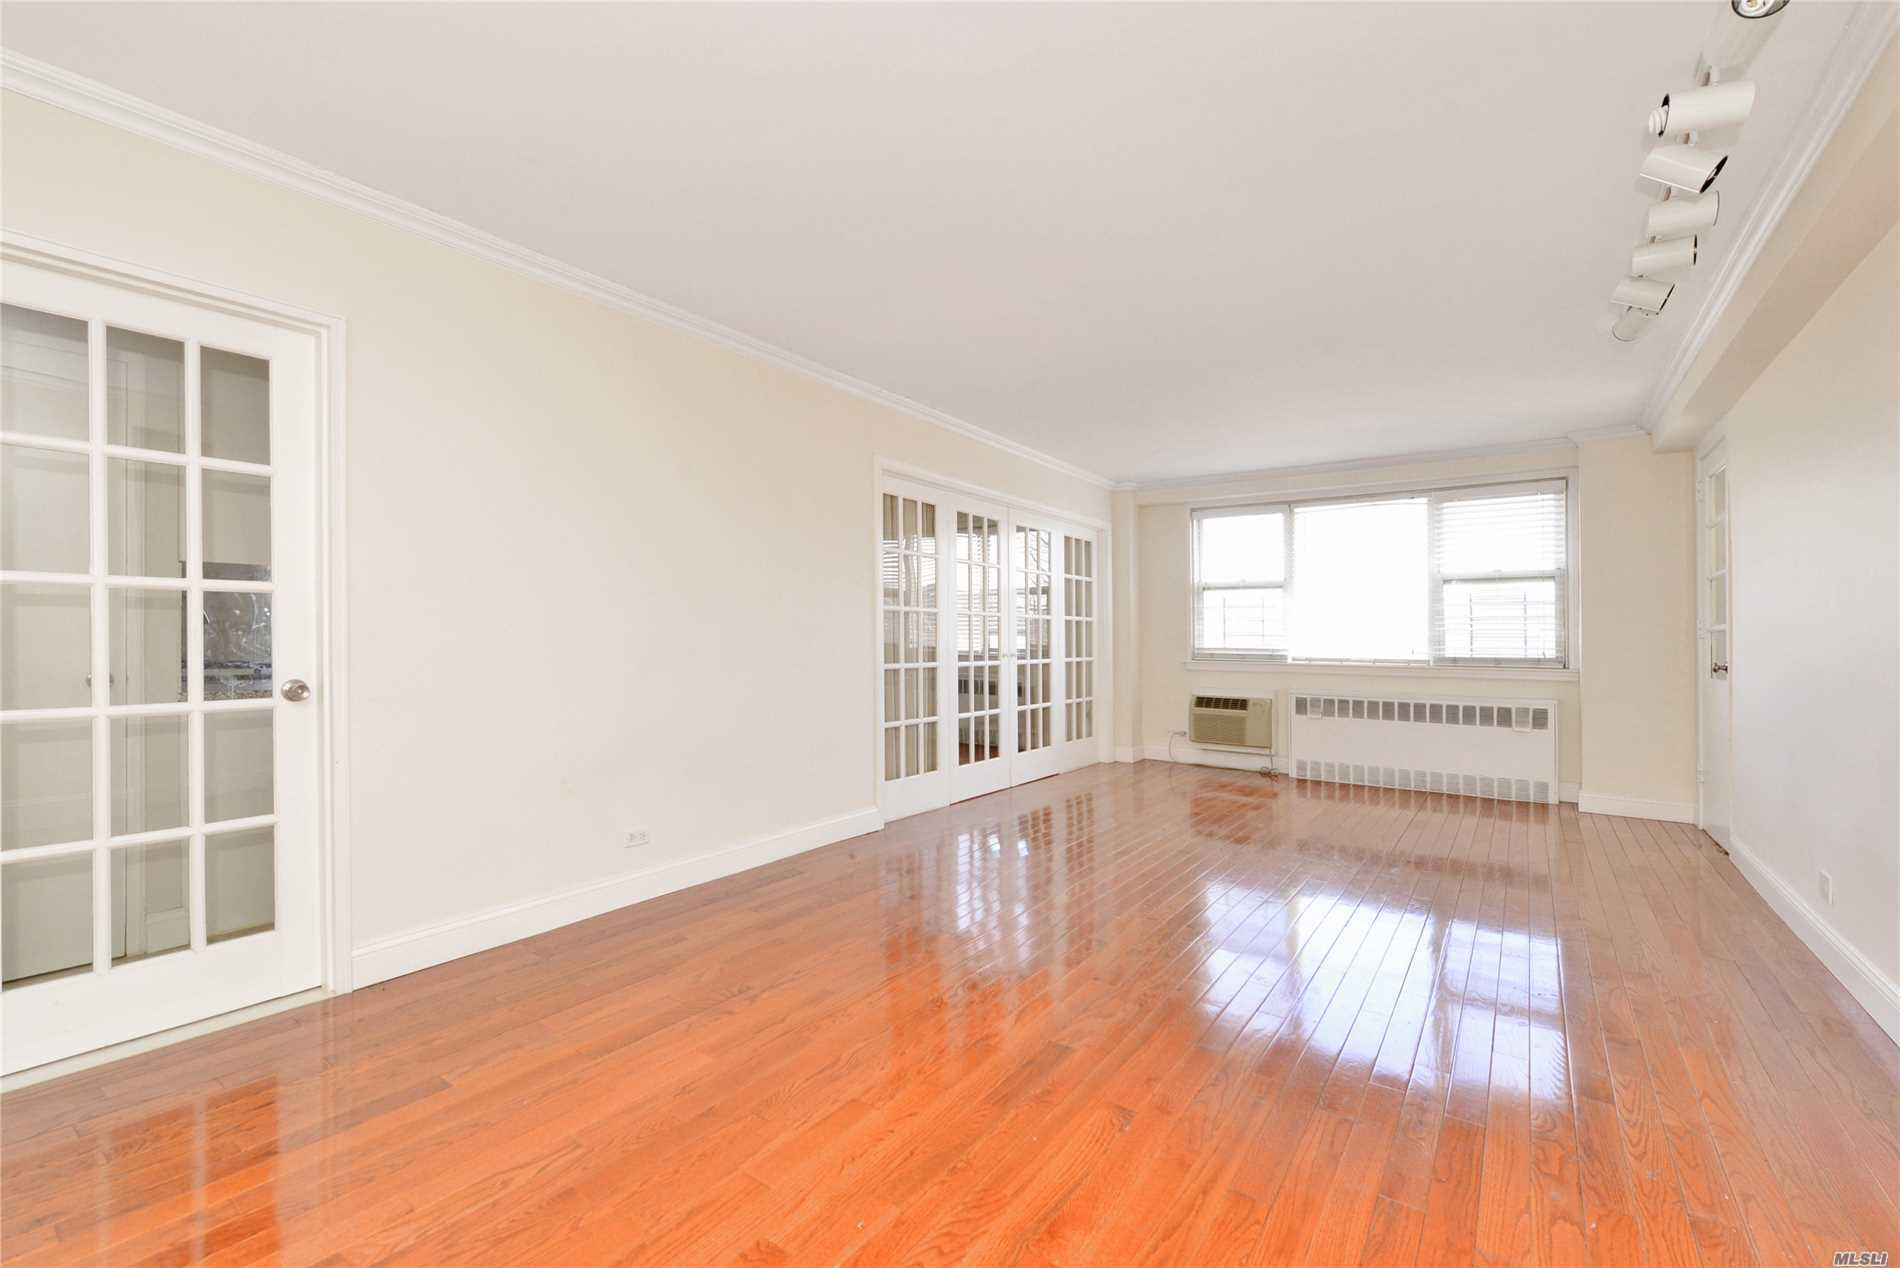 Sunny, Gorgeous And Convenient 3Br, 2 Bath Corner Apt with Large Balcony In The Heart Of Forest Hills. 24 Hr Doorman In A Well Maintained Fireproof Concrete Building With Newly Renovated Hallways and bike rack in basement. Less Than 5 Min Walk To E, F, R, M Train And Steps To Shopping And Restaurants. Zoned For Ps 196 And Ps 303. Small dogs and cats allowed. No flip tax. 20% down payment required.